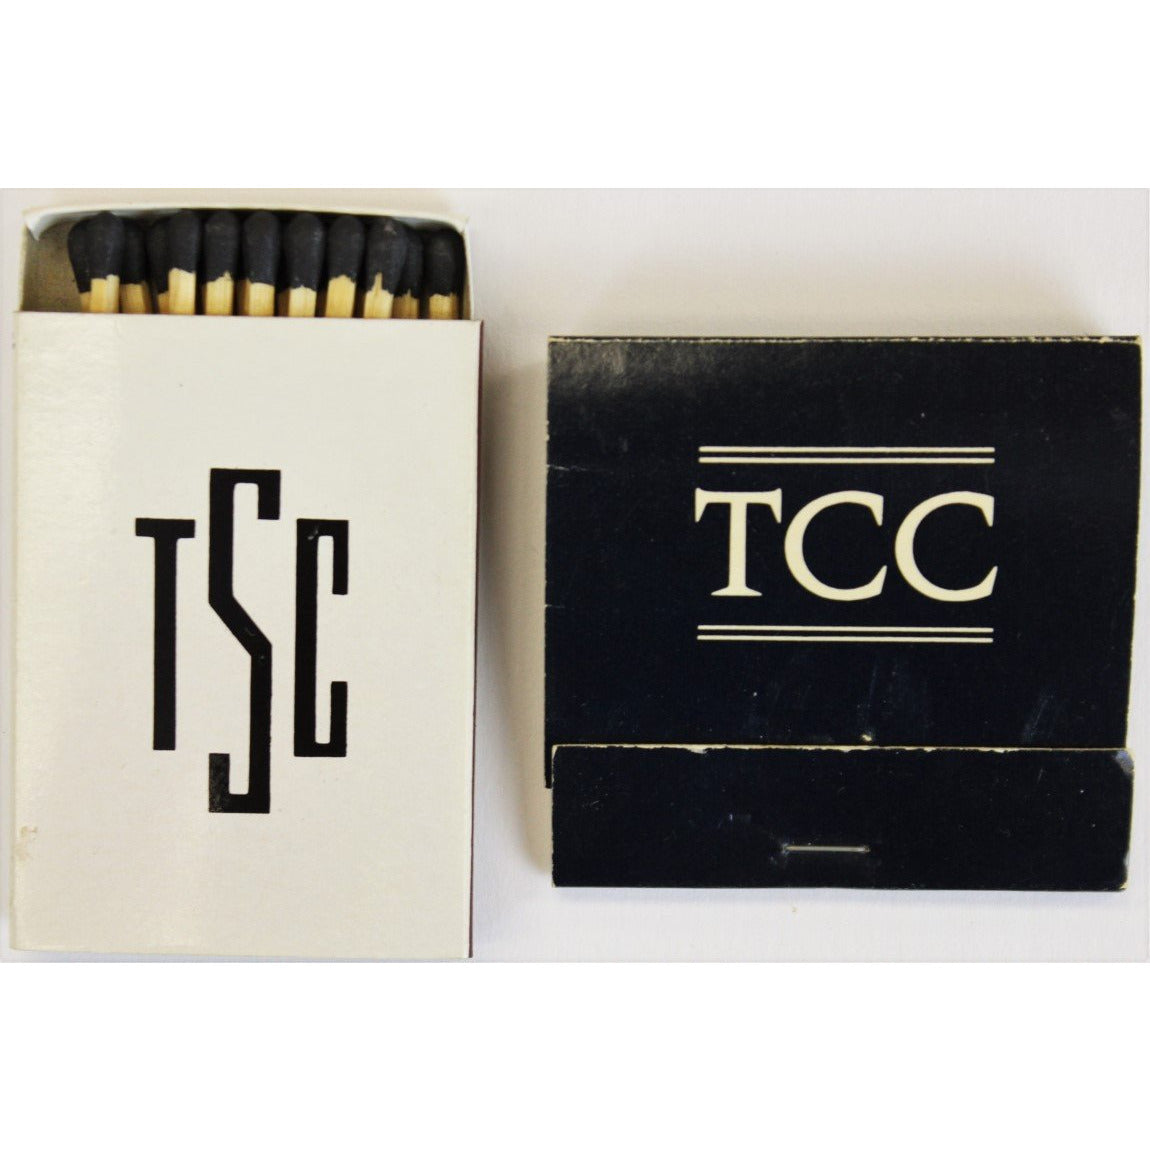 The Crane Club & The Spy Club Matchbooks